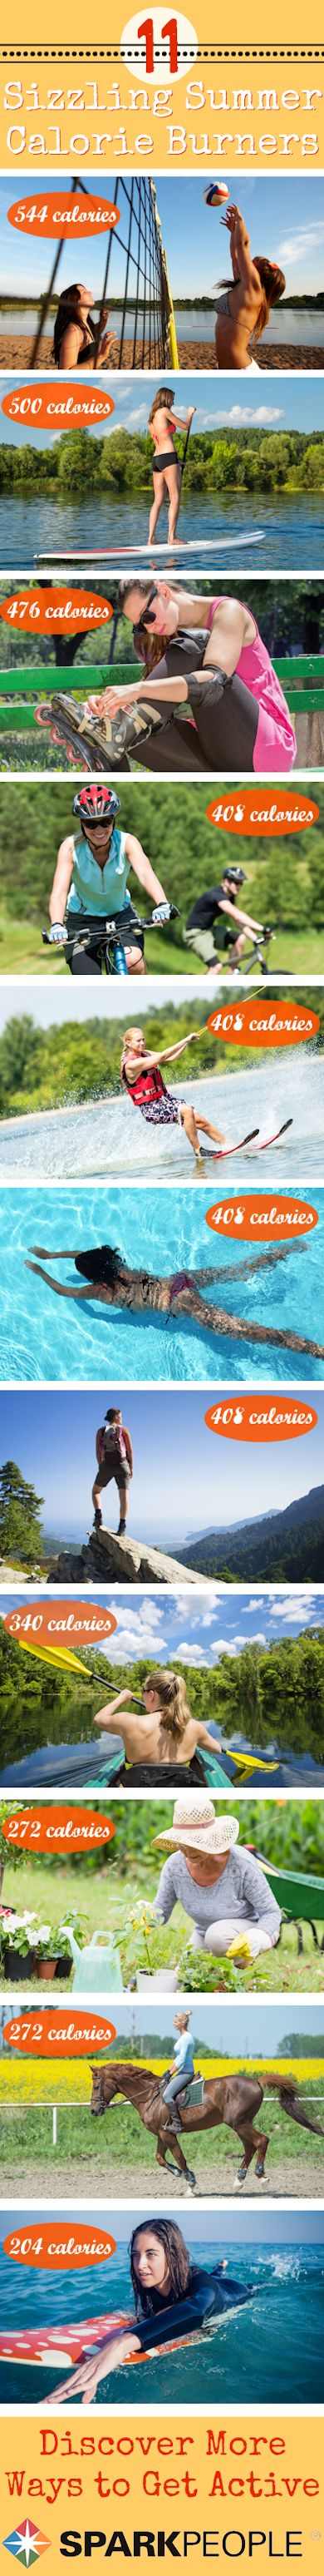 11 Sizzling Summer Calorie Burners Exercise